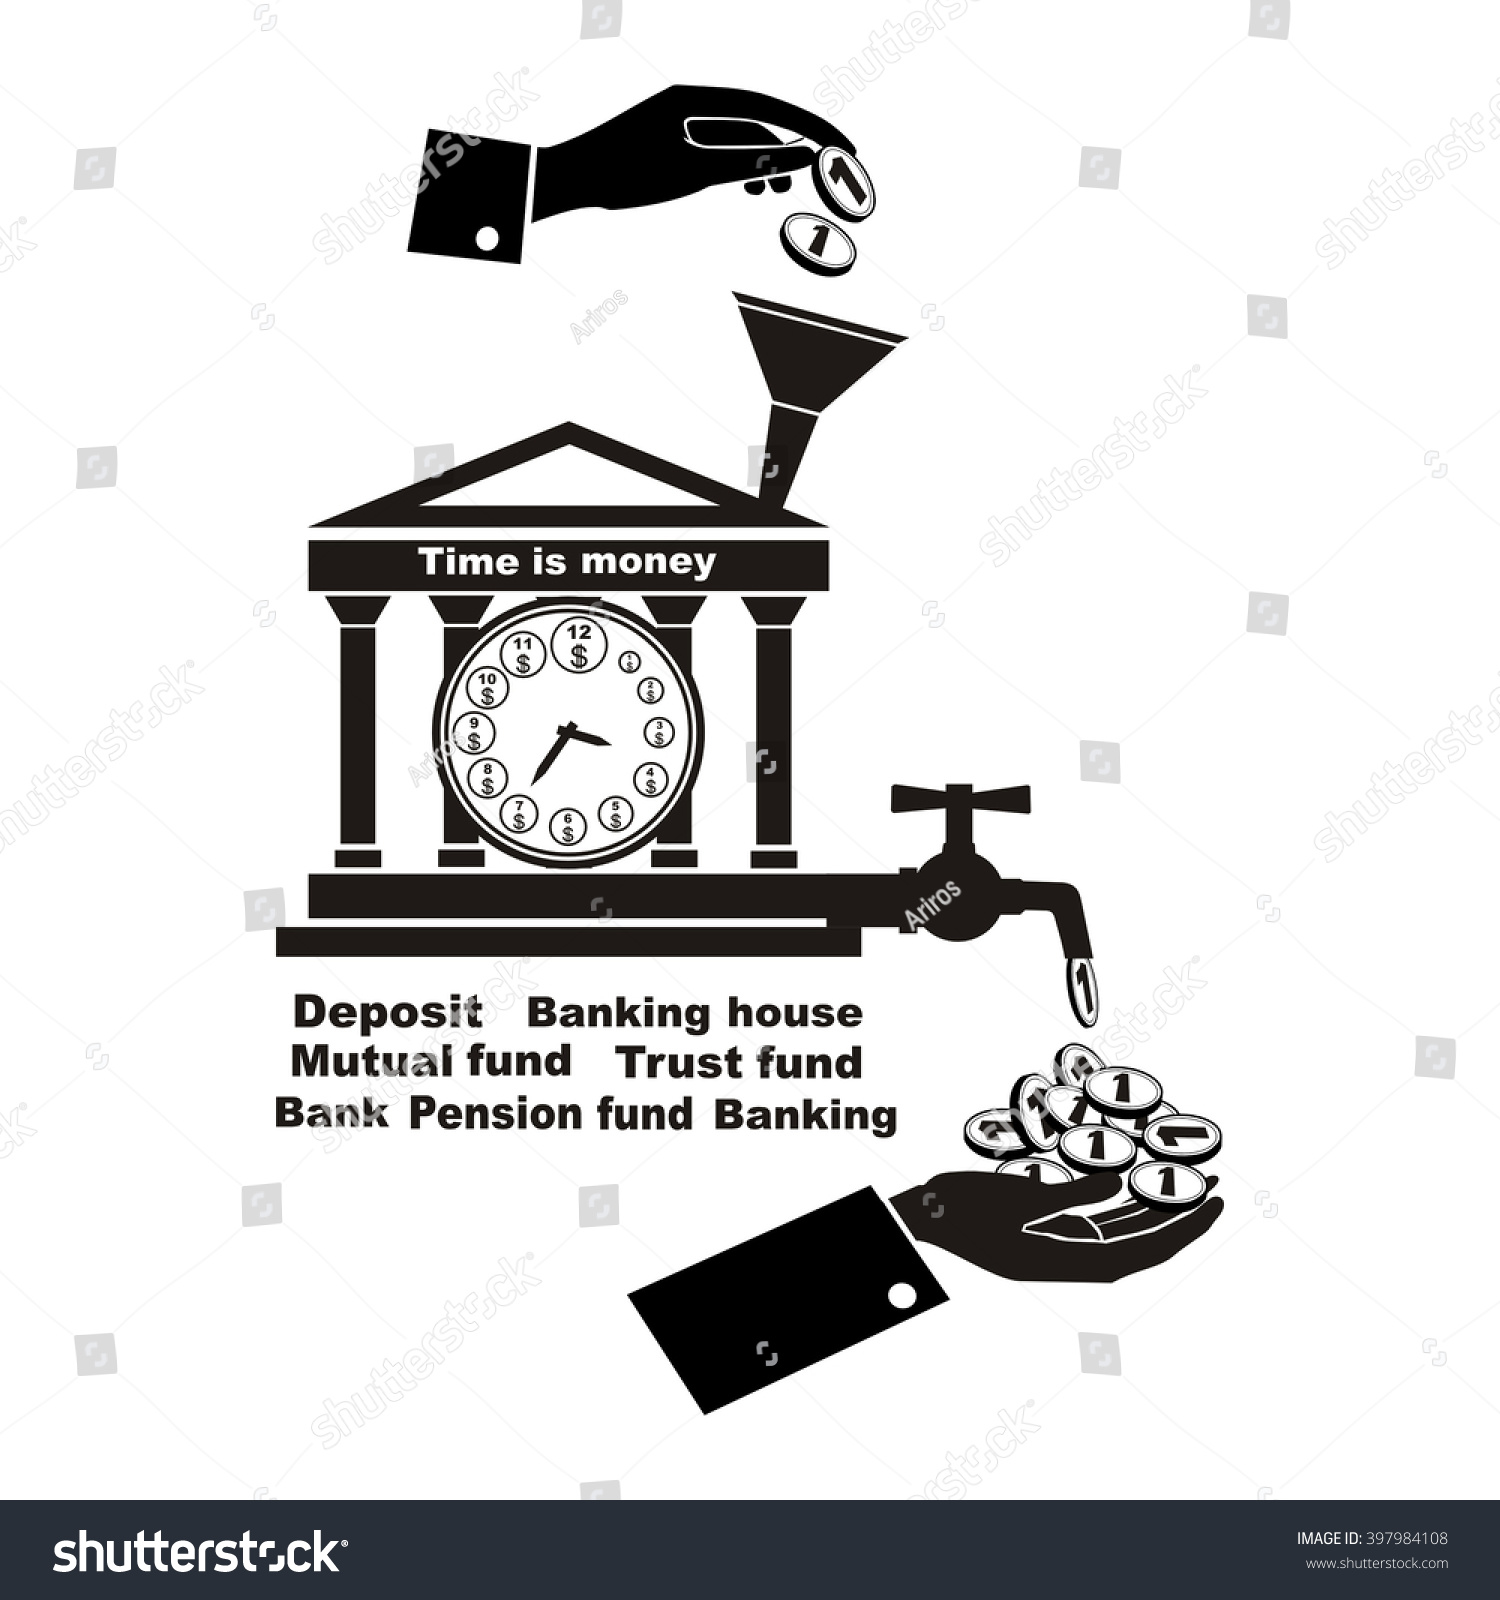 Banking symbol bank symbol pension fund stock vector 397984108 banking symbol bank symbol pension fund symbol mutual fund symbol computer drawing biocorpaavc Images